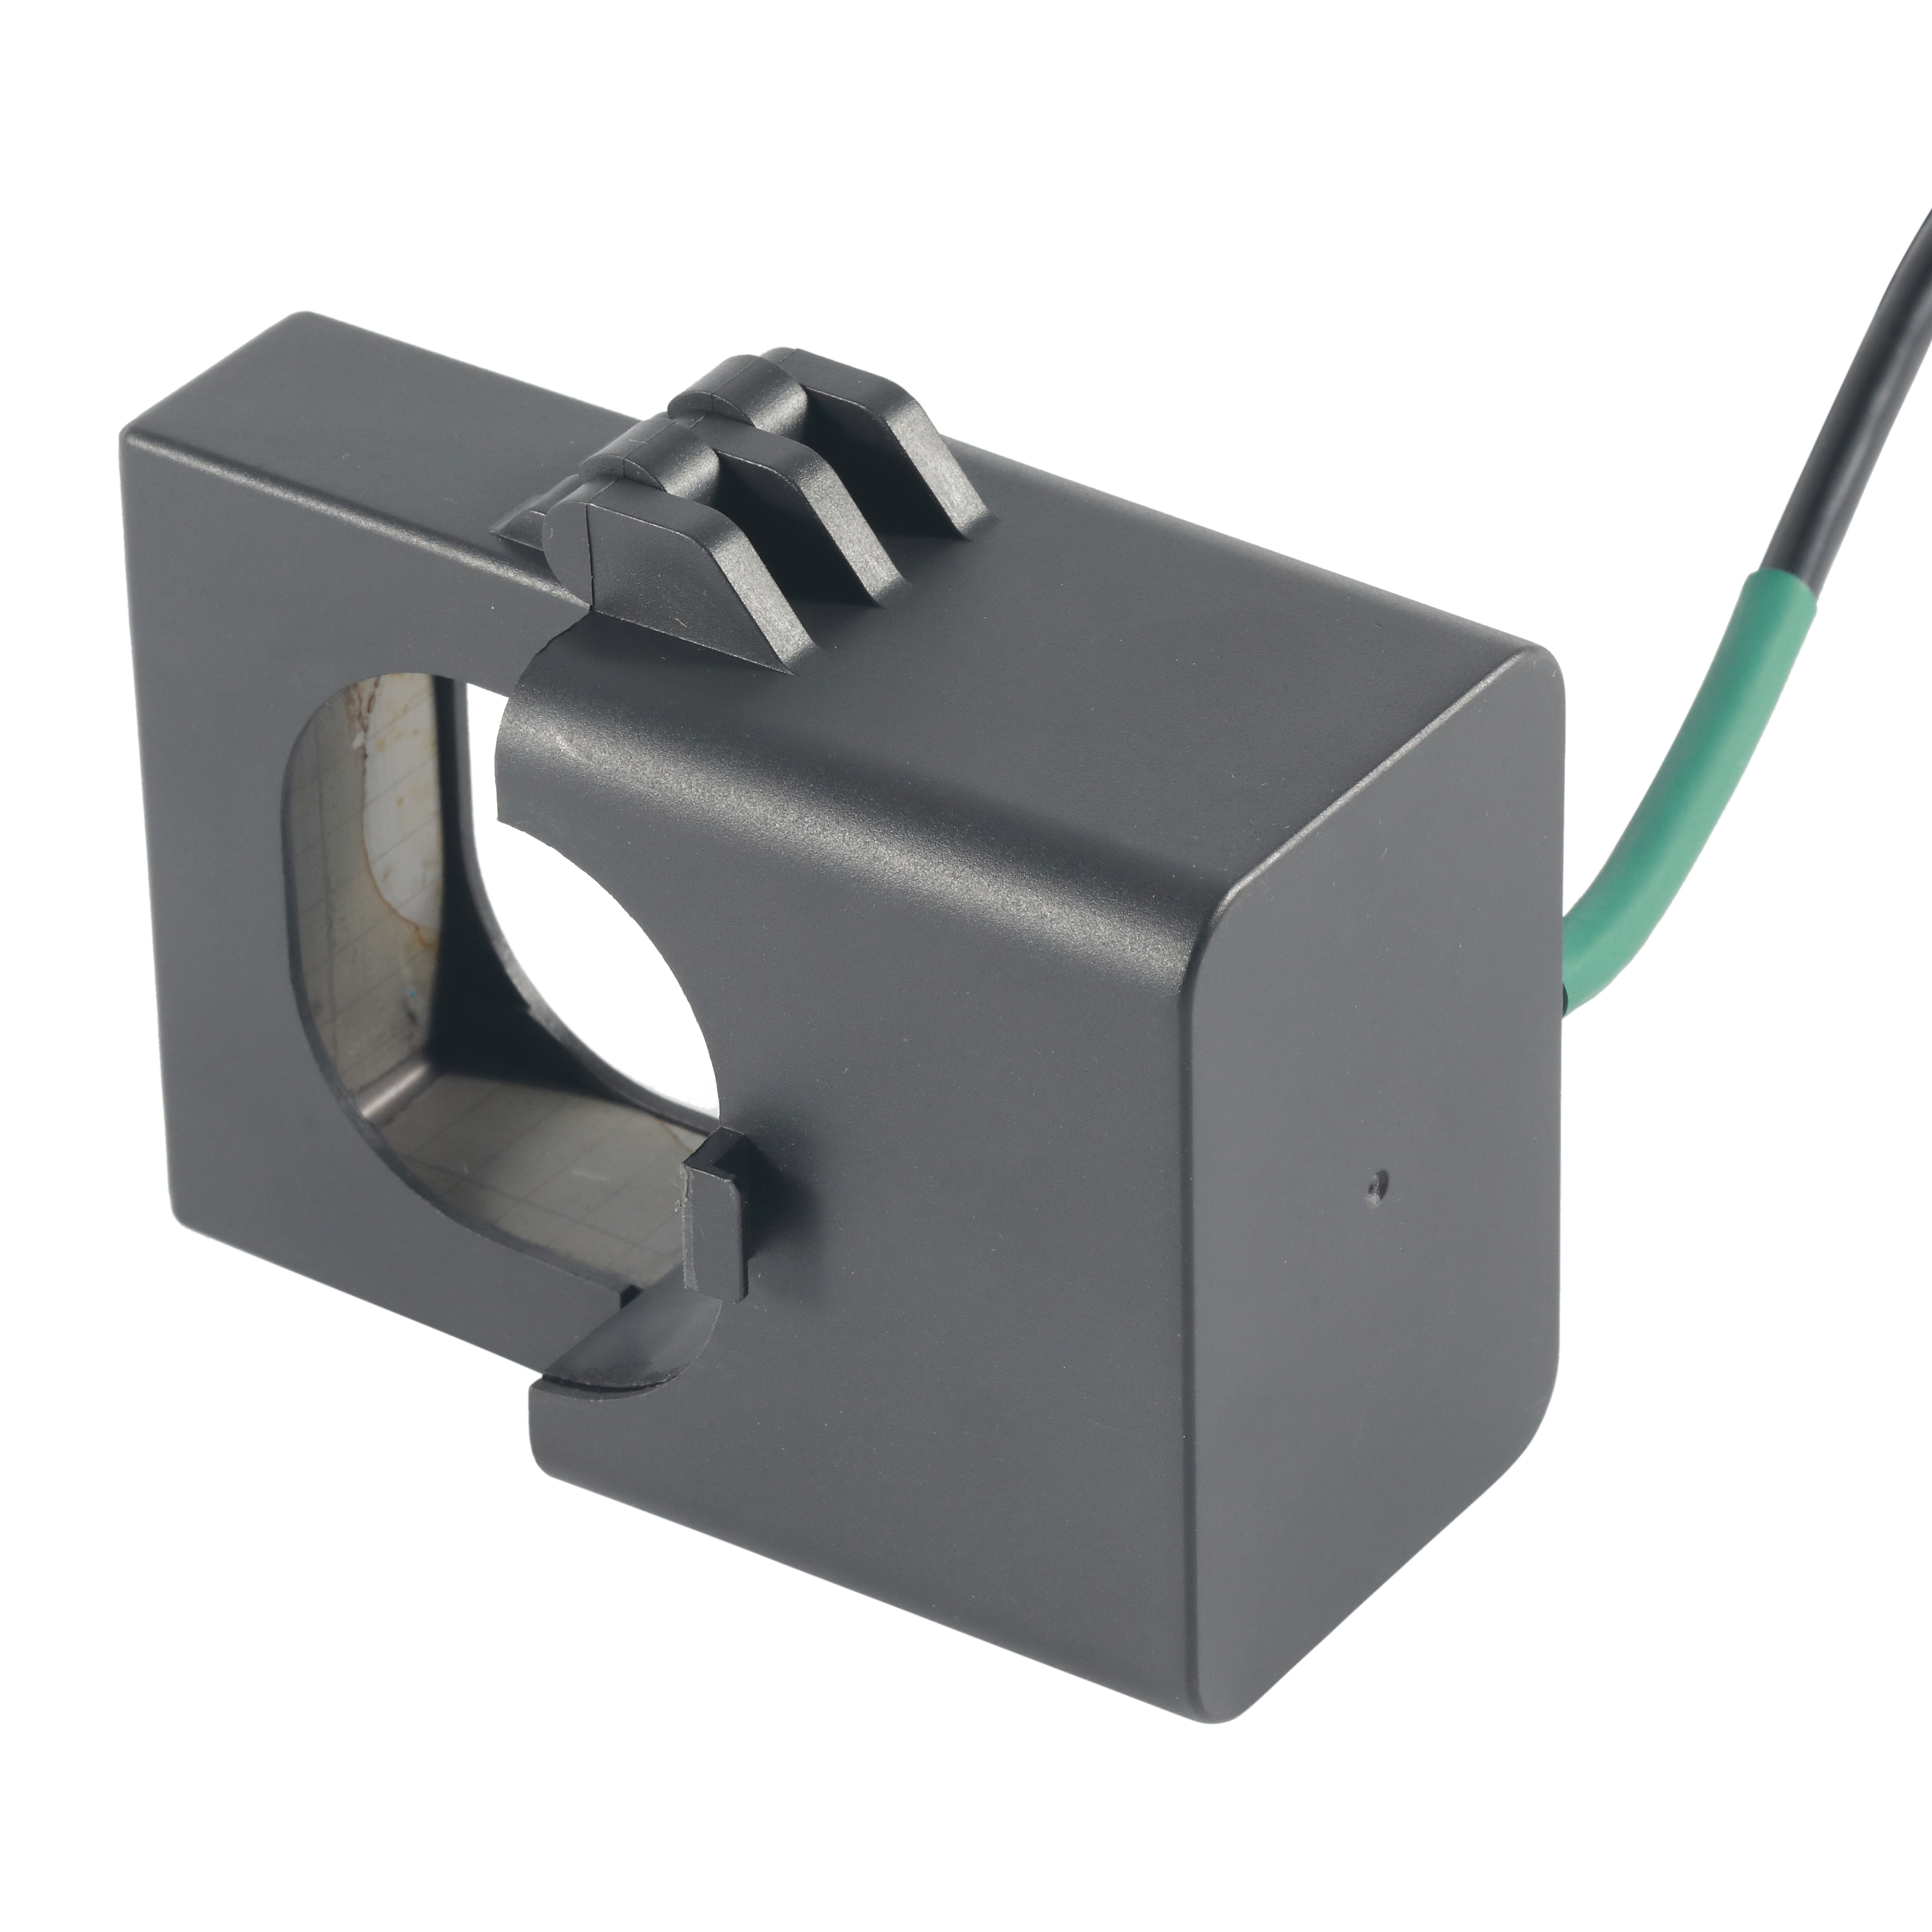 φ45 5000:1 800A Split core current transformer